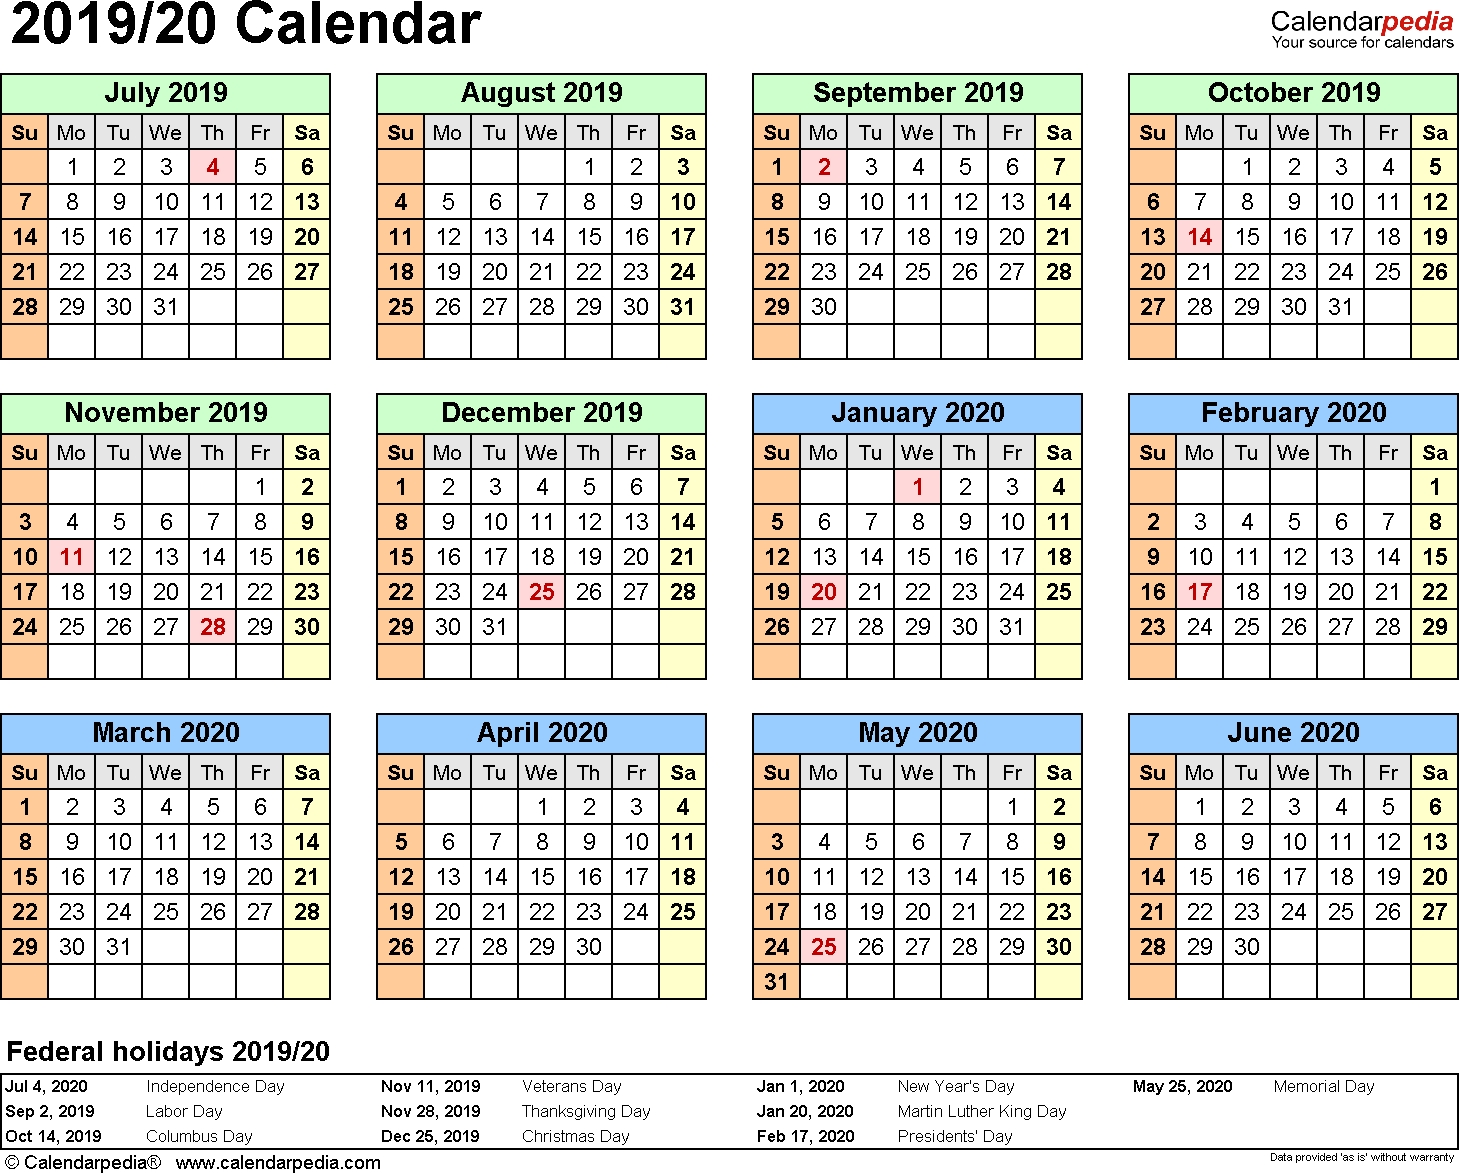 Split Year Calendar 2019/20 (July To June) - Pdf Templates for July 2019-June 2020 Printable Calendar